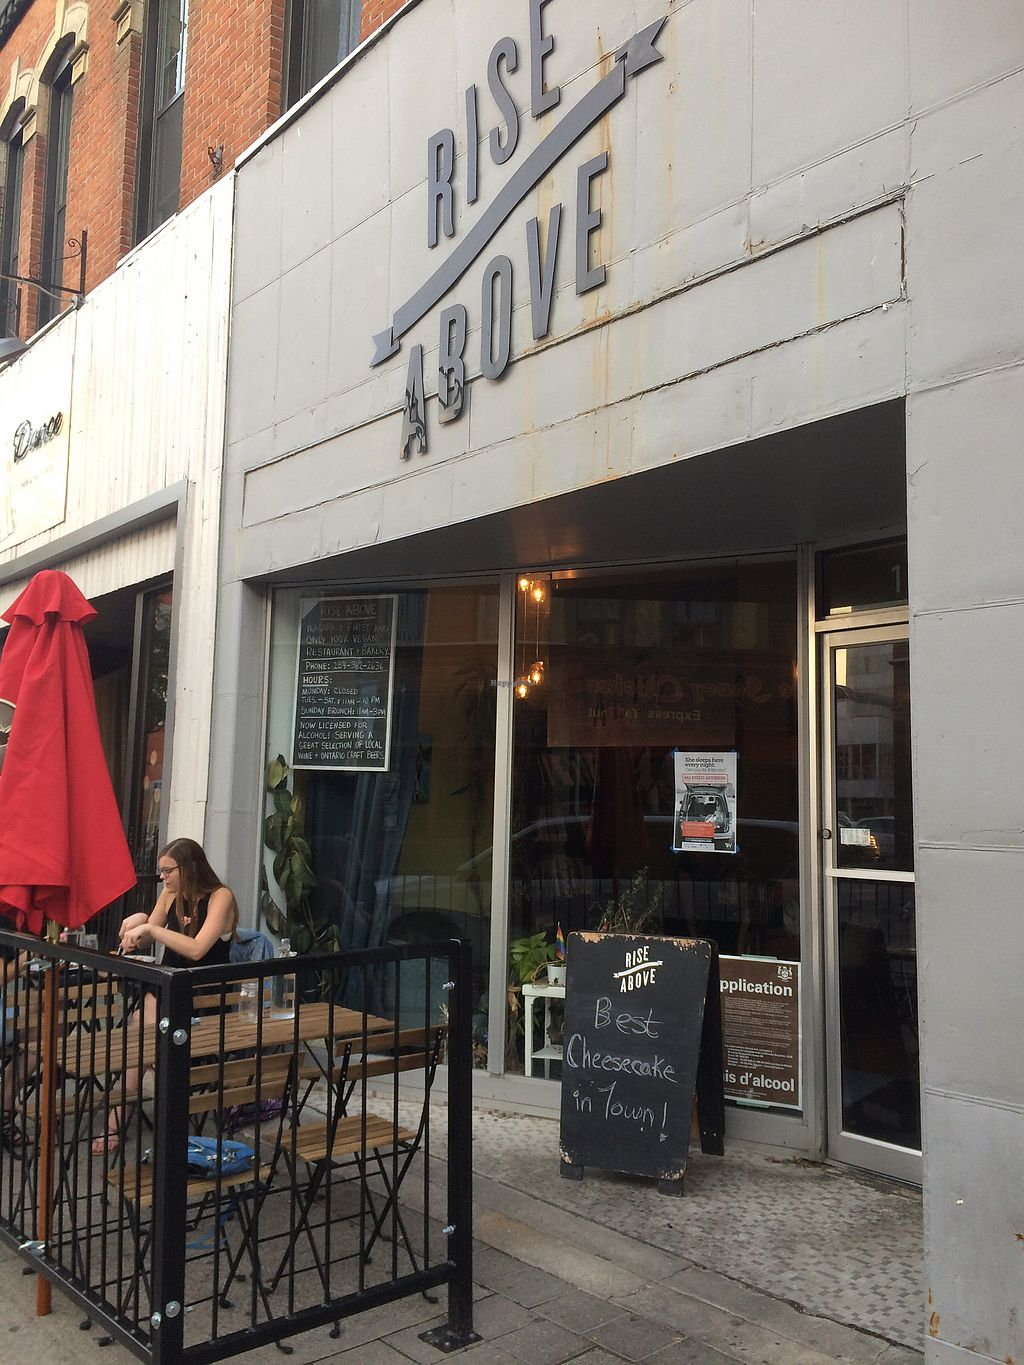 """Photo of Rise Above Restaurant and Bakery  by <a href=""""/members/profile/fruitiJulie"""">fruitiJulie</a> <br/>Outside tables in summer  <br/> August 1, 2017  - <a href='/contact/abuse/image/26245/287828'>Report</a>"""